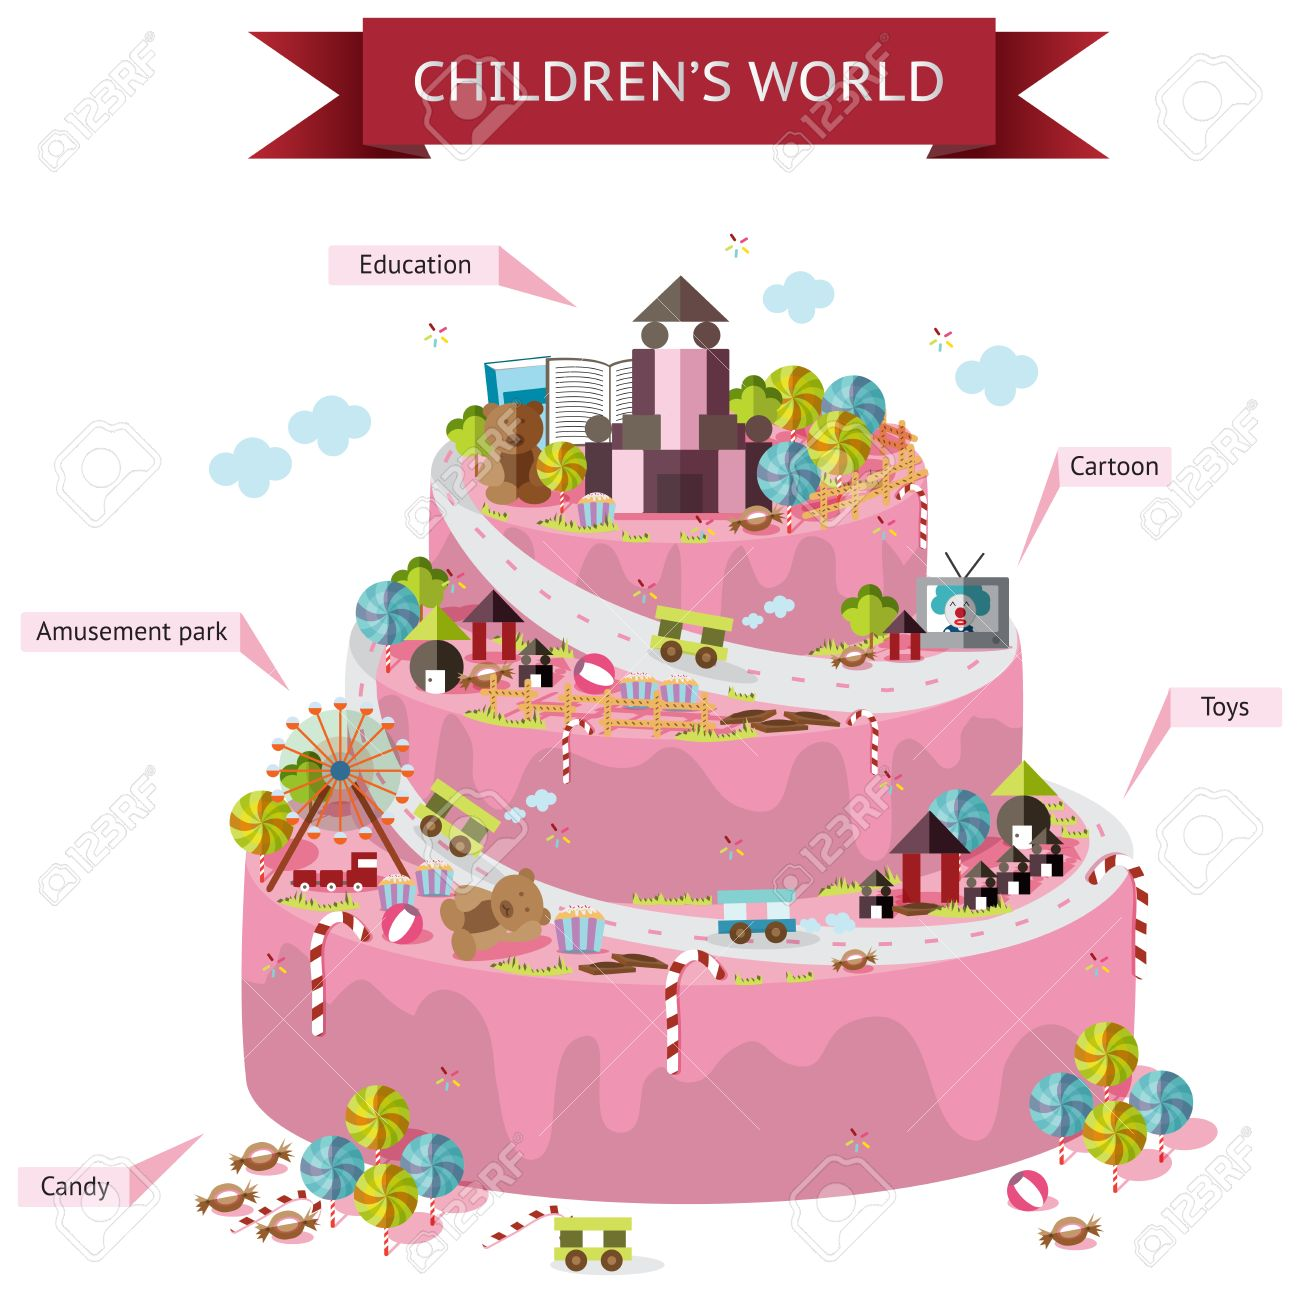 Children fantasy world map of imagination in wedding cake shape children fantasy world map of imagination in wedding cake shape infographic with candy and toy decorations gumiabroncs Images